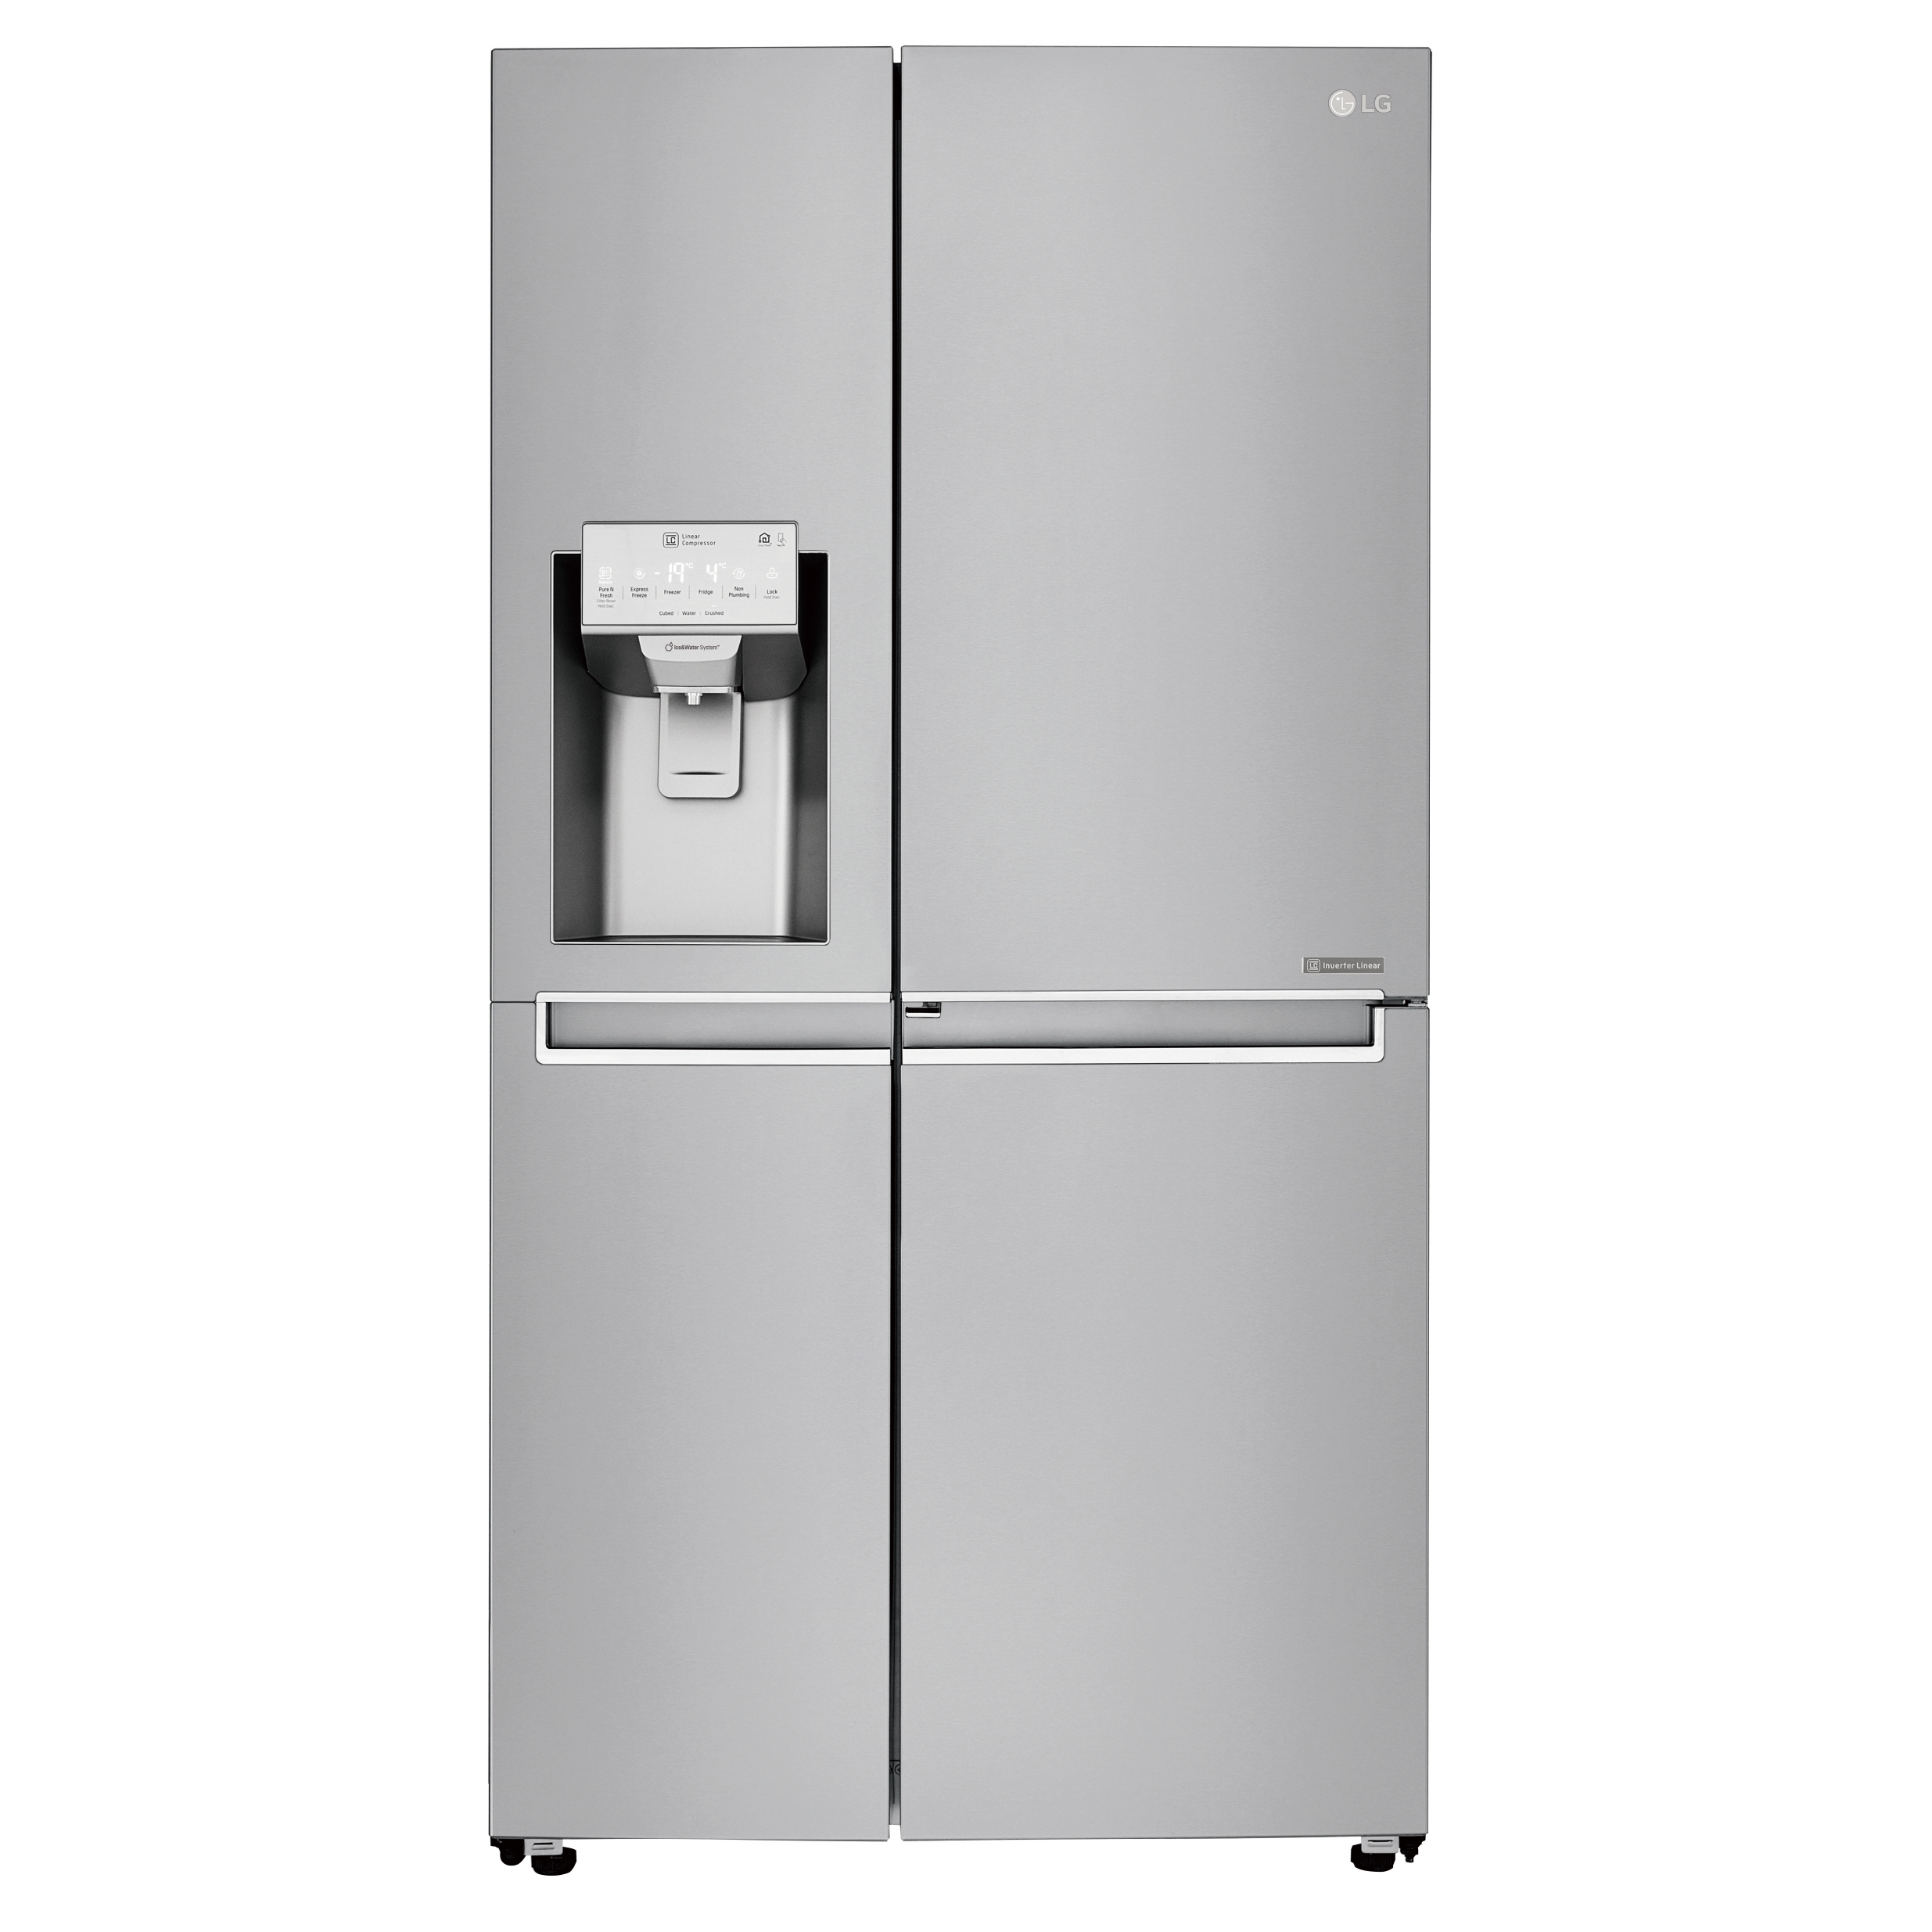 The front shot of LG's side-by-side refrigerator